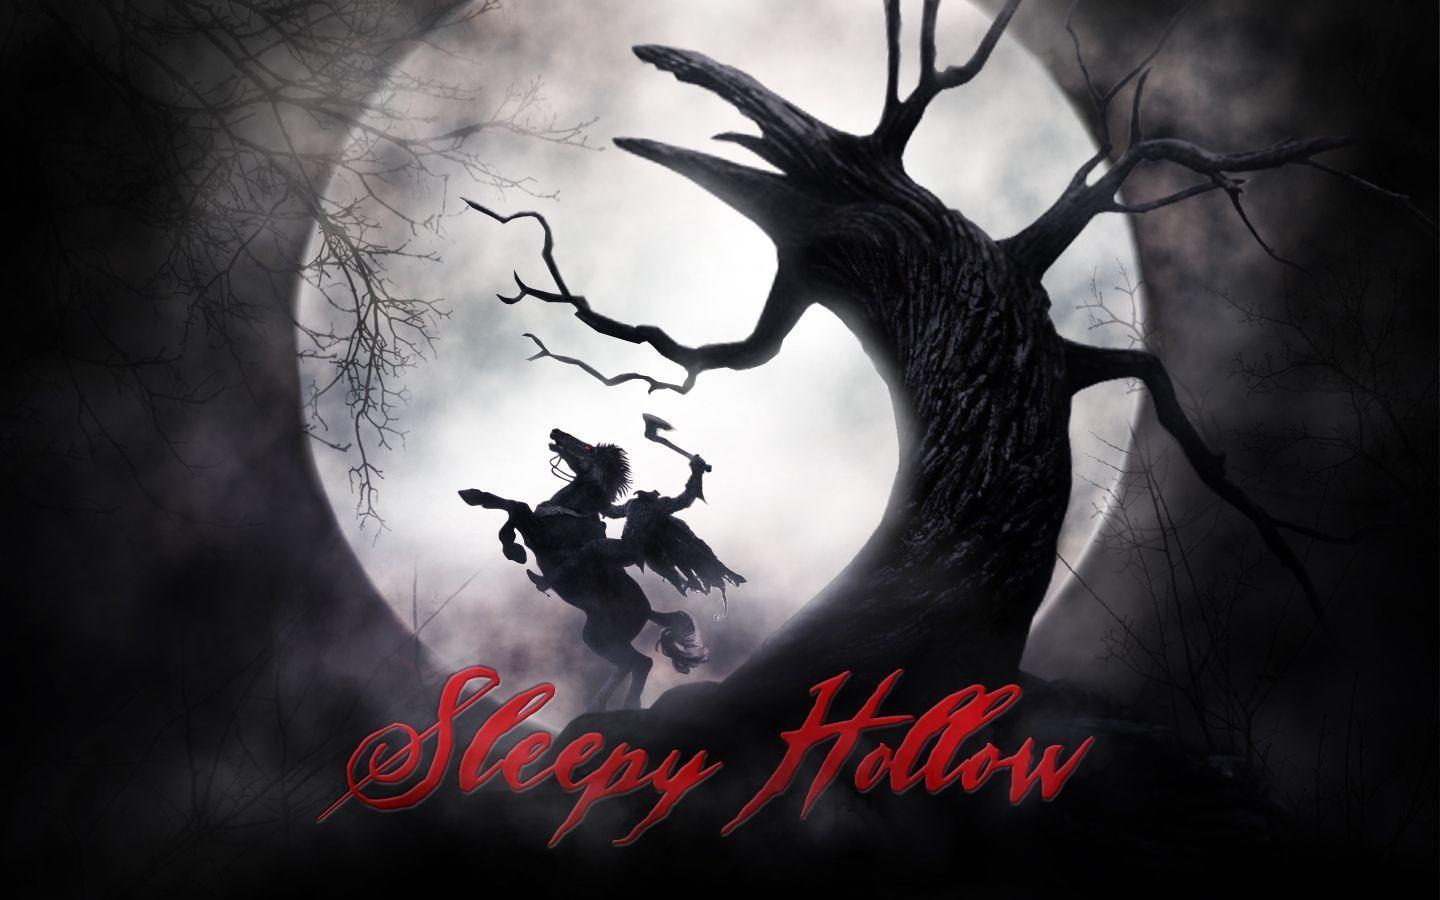 Movies Sleepy Hollow The Headless Horseman : Desktop and mobile